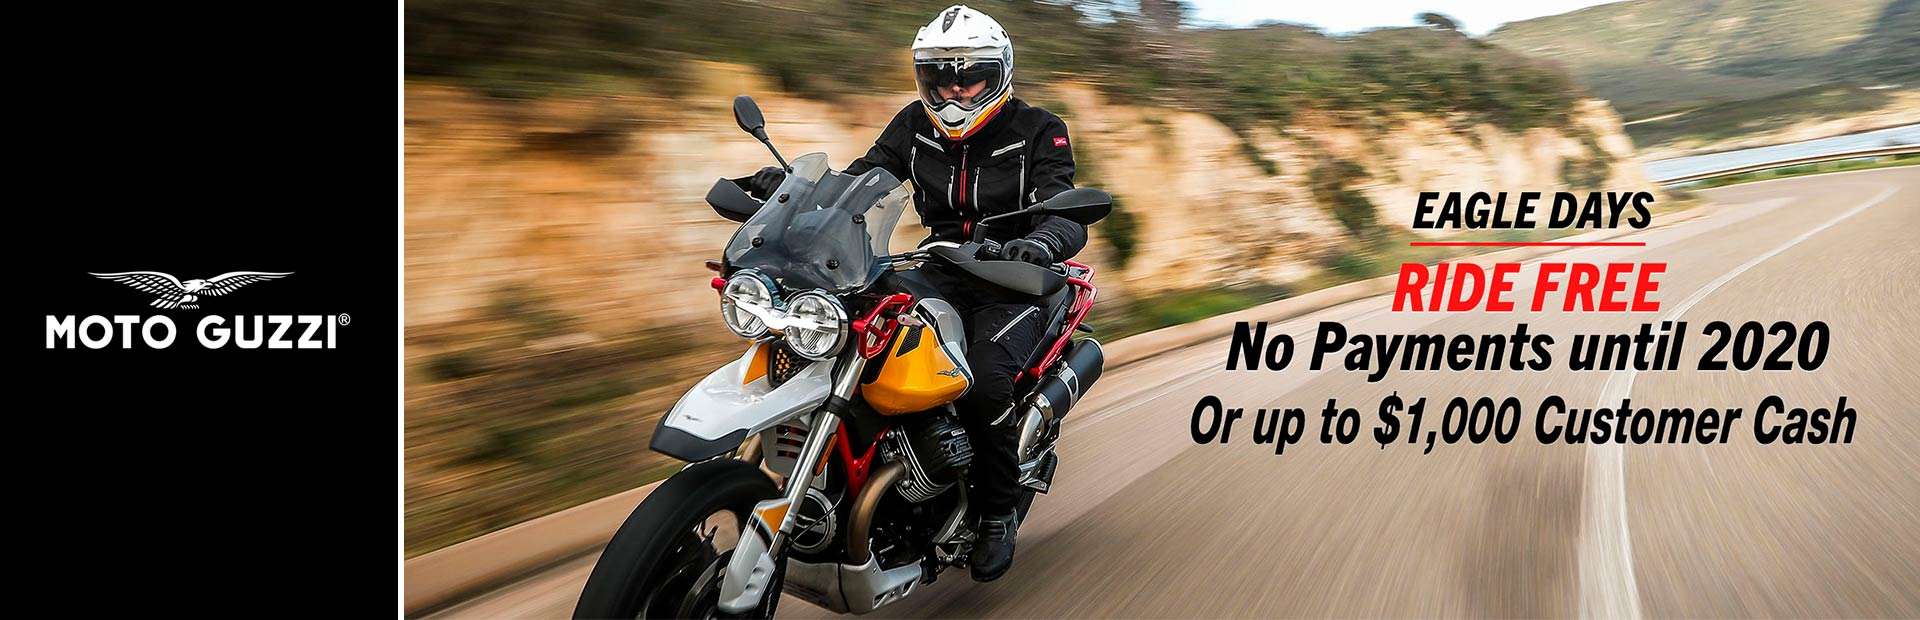 Motorcycles for Sale & Dealers in Minnesota - Leo's South Lakeville